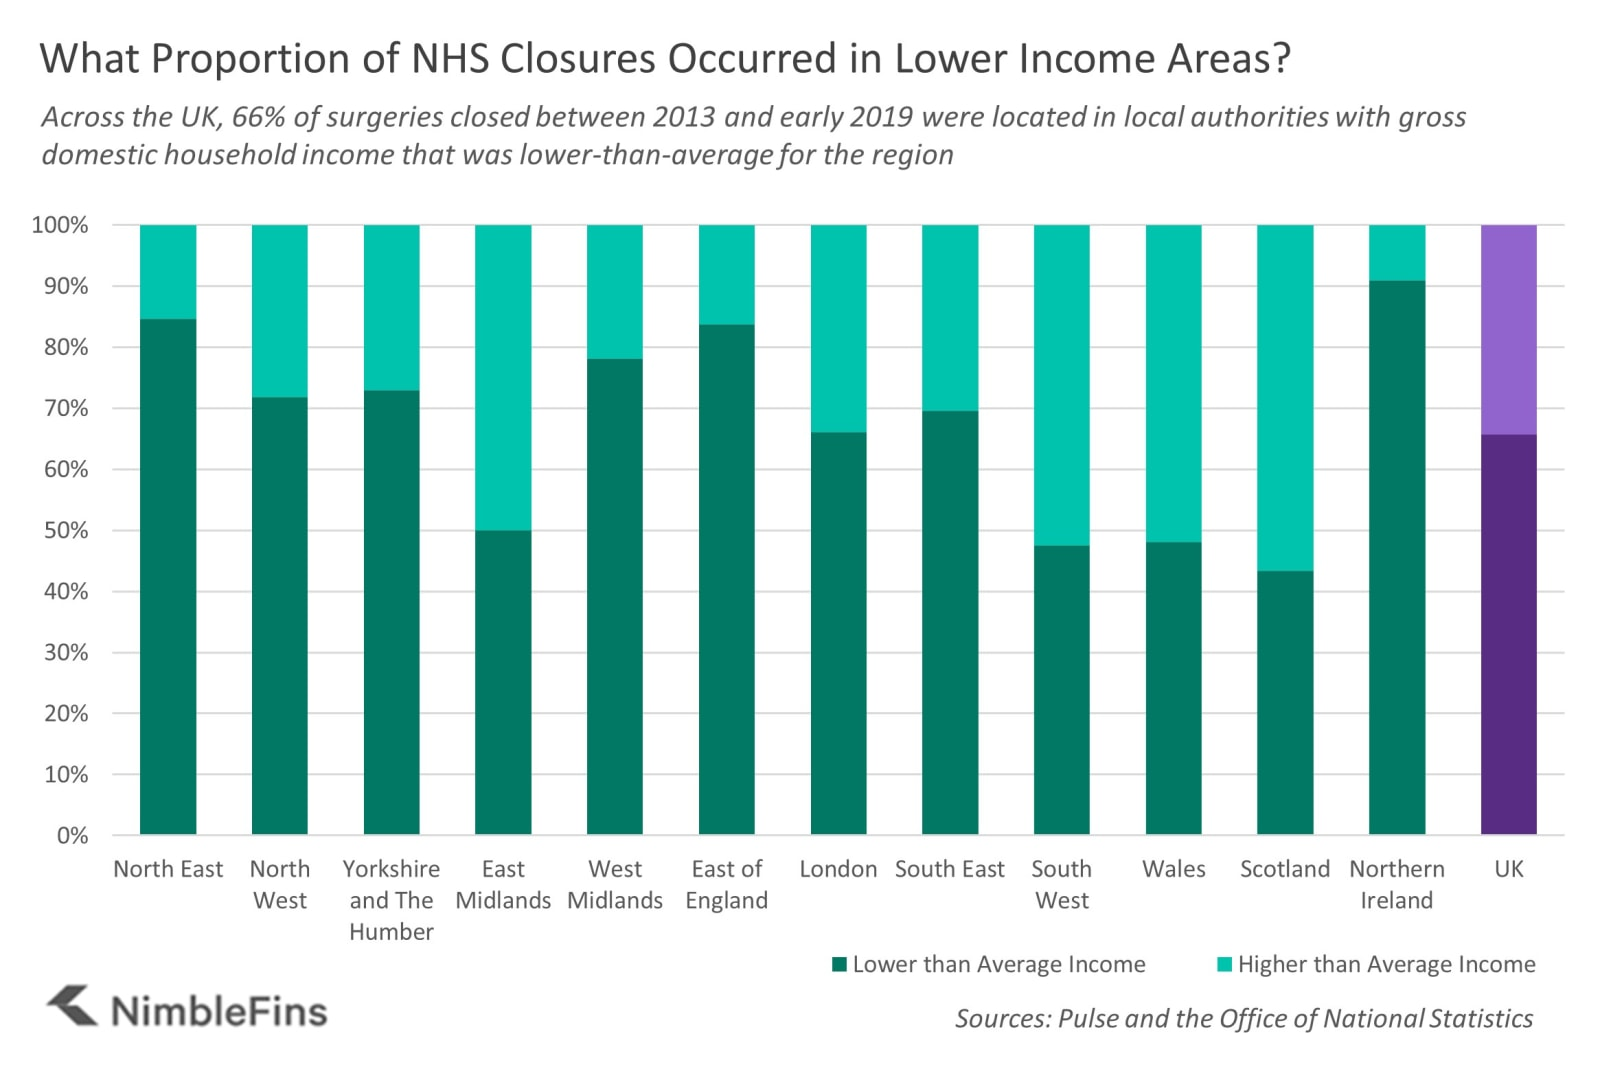 Chart showing the proportion of surgeries that were closed in low and high income areas